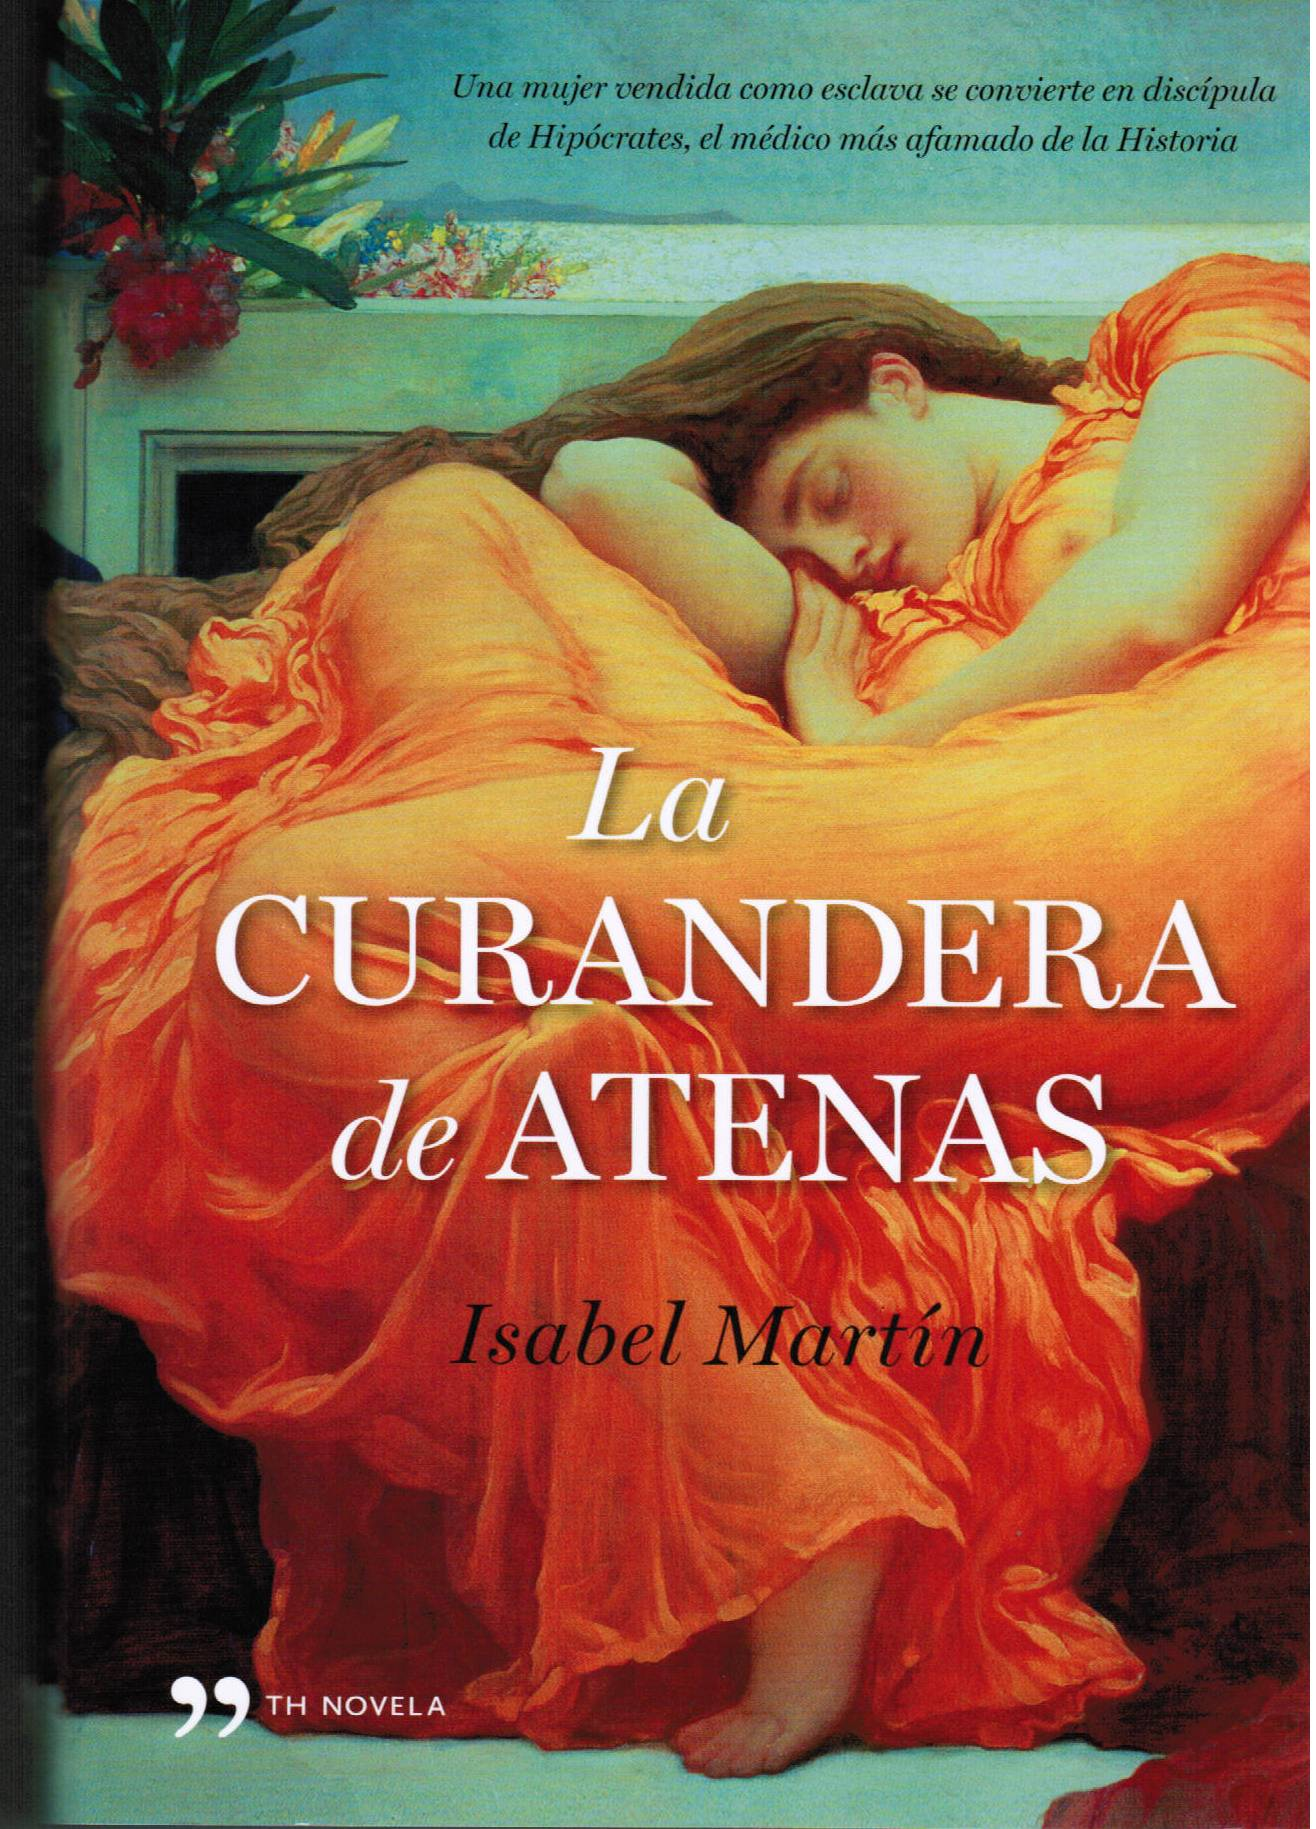 The healer of Athens (La curandera de Atenas)